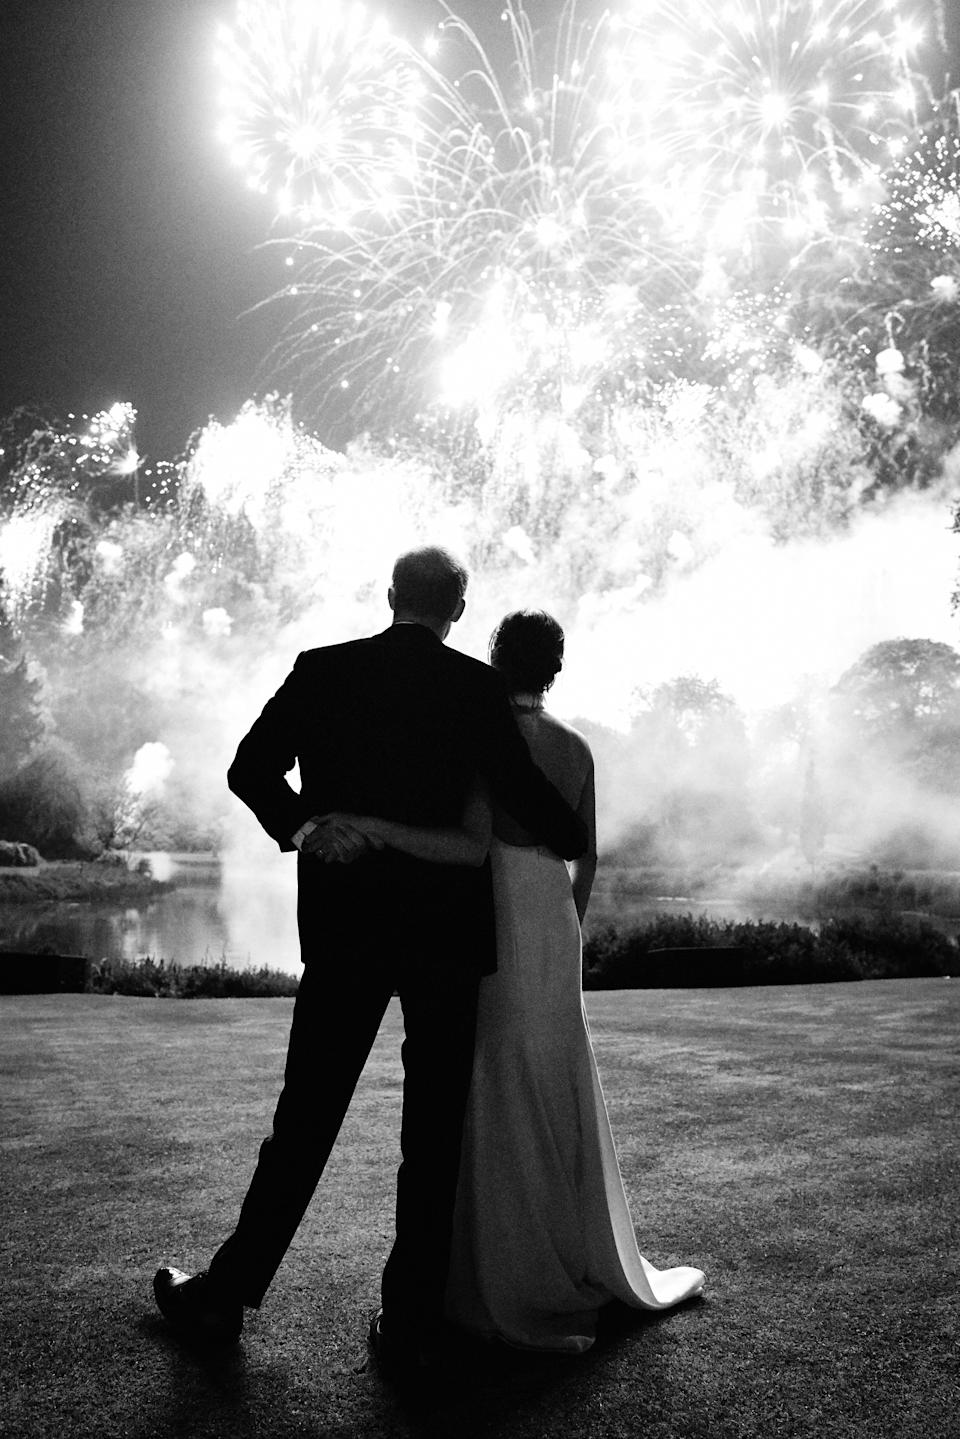 The Duke and Duchess of Sussex at their Wedding Reception at Frogmore House on 19th May [Photo: Chris Allerton/PA]